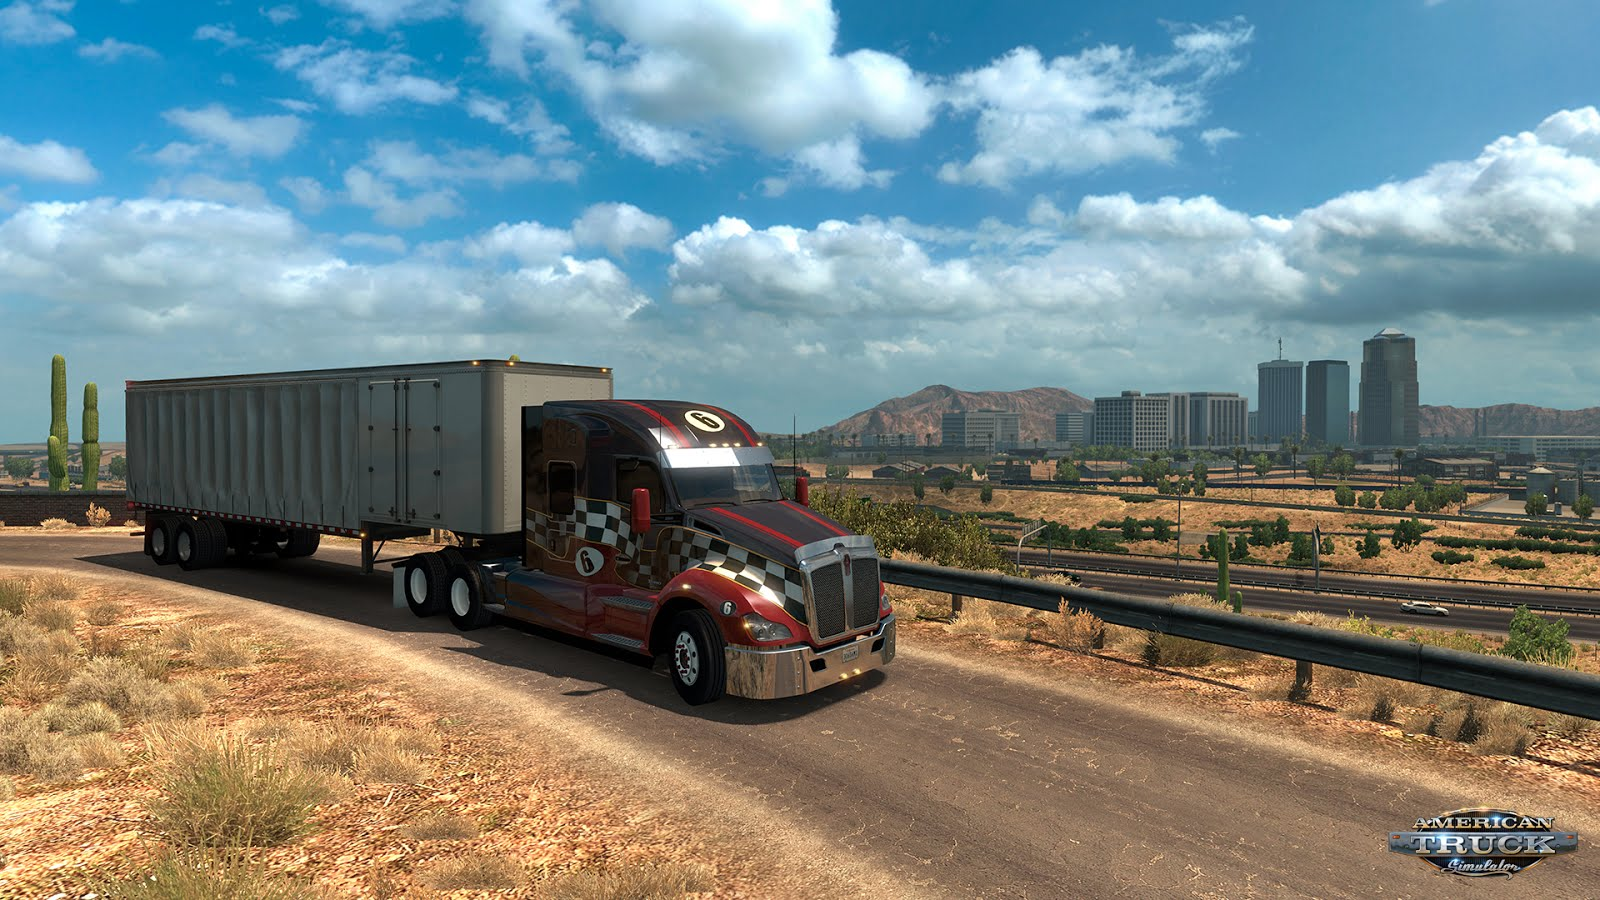 Arizona map DLC expansion for ATS released!